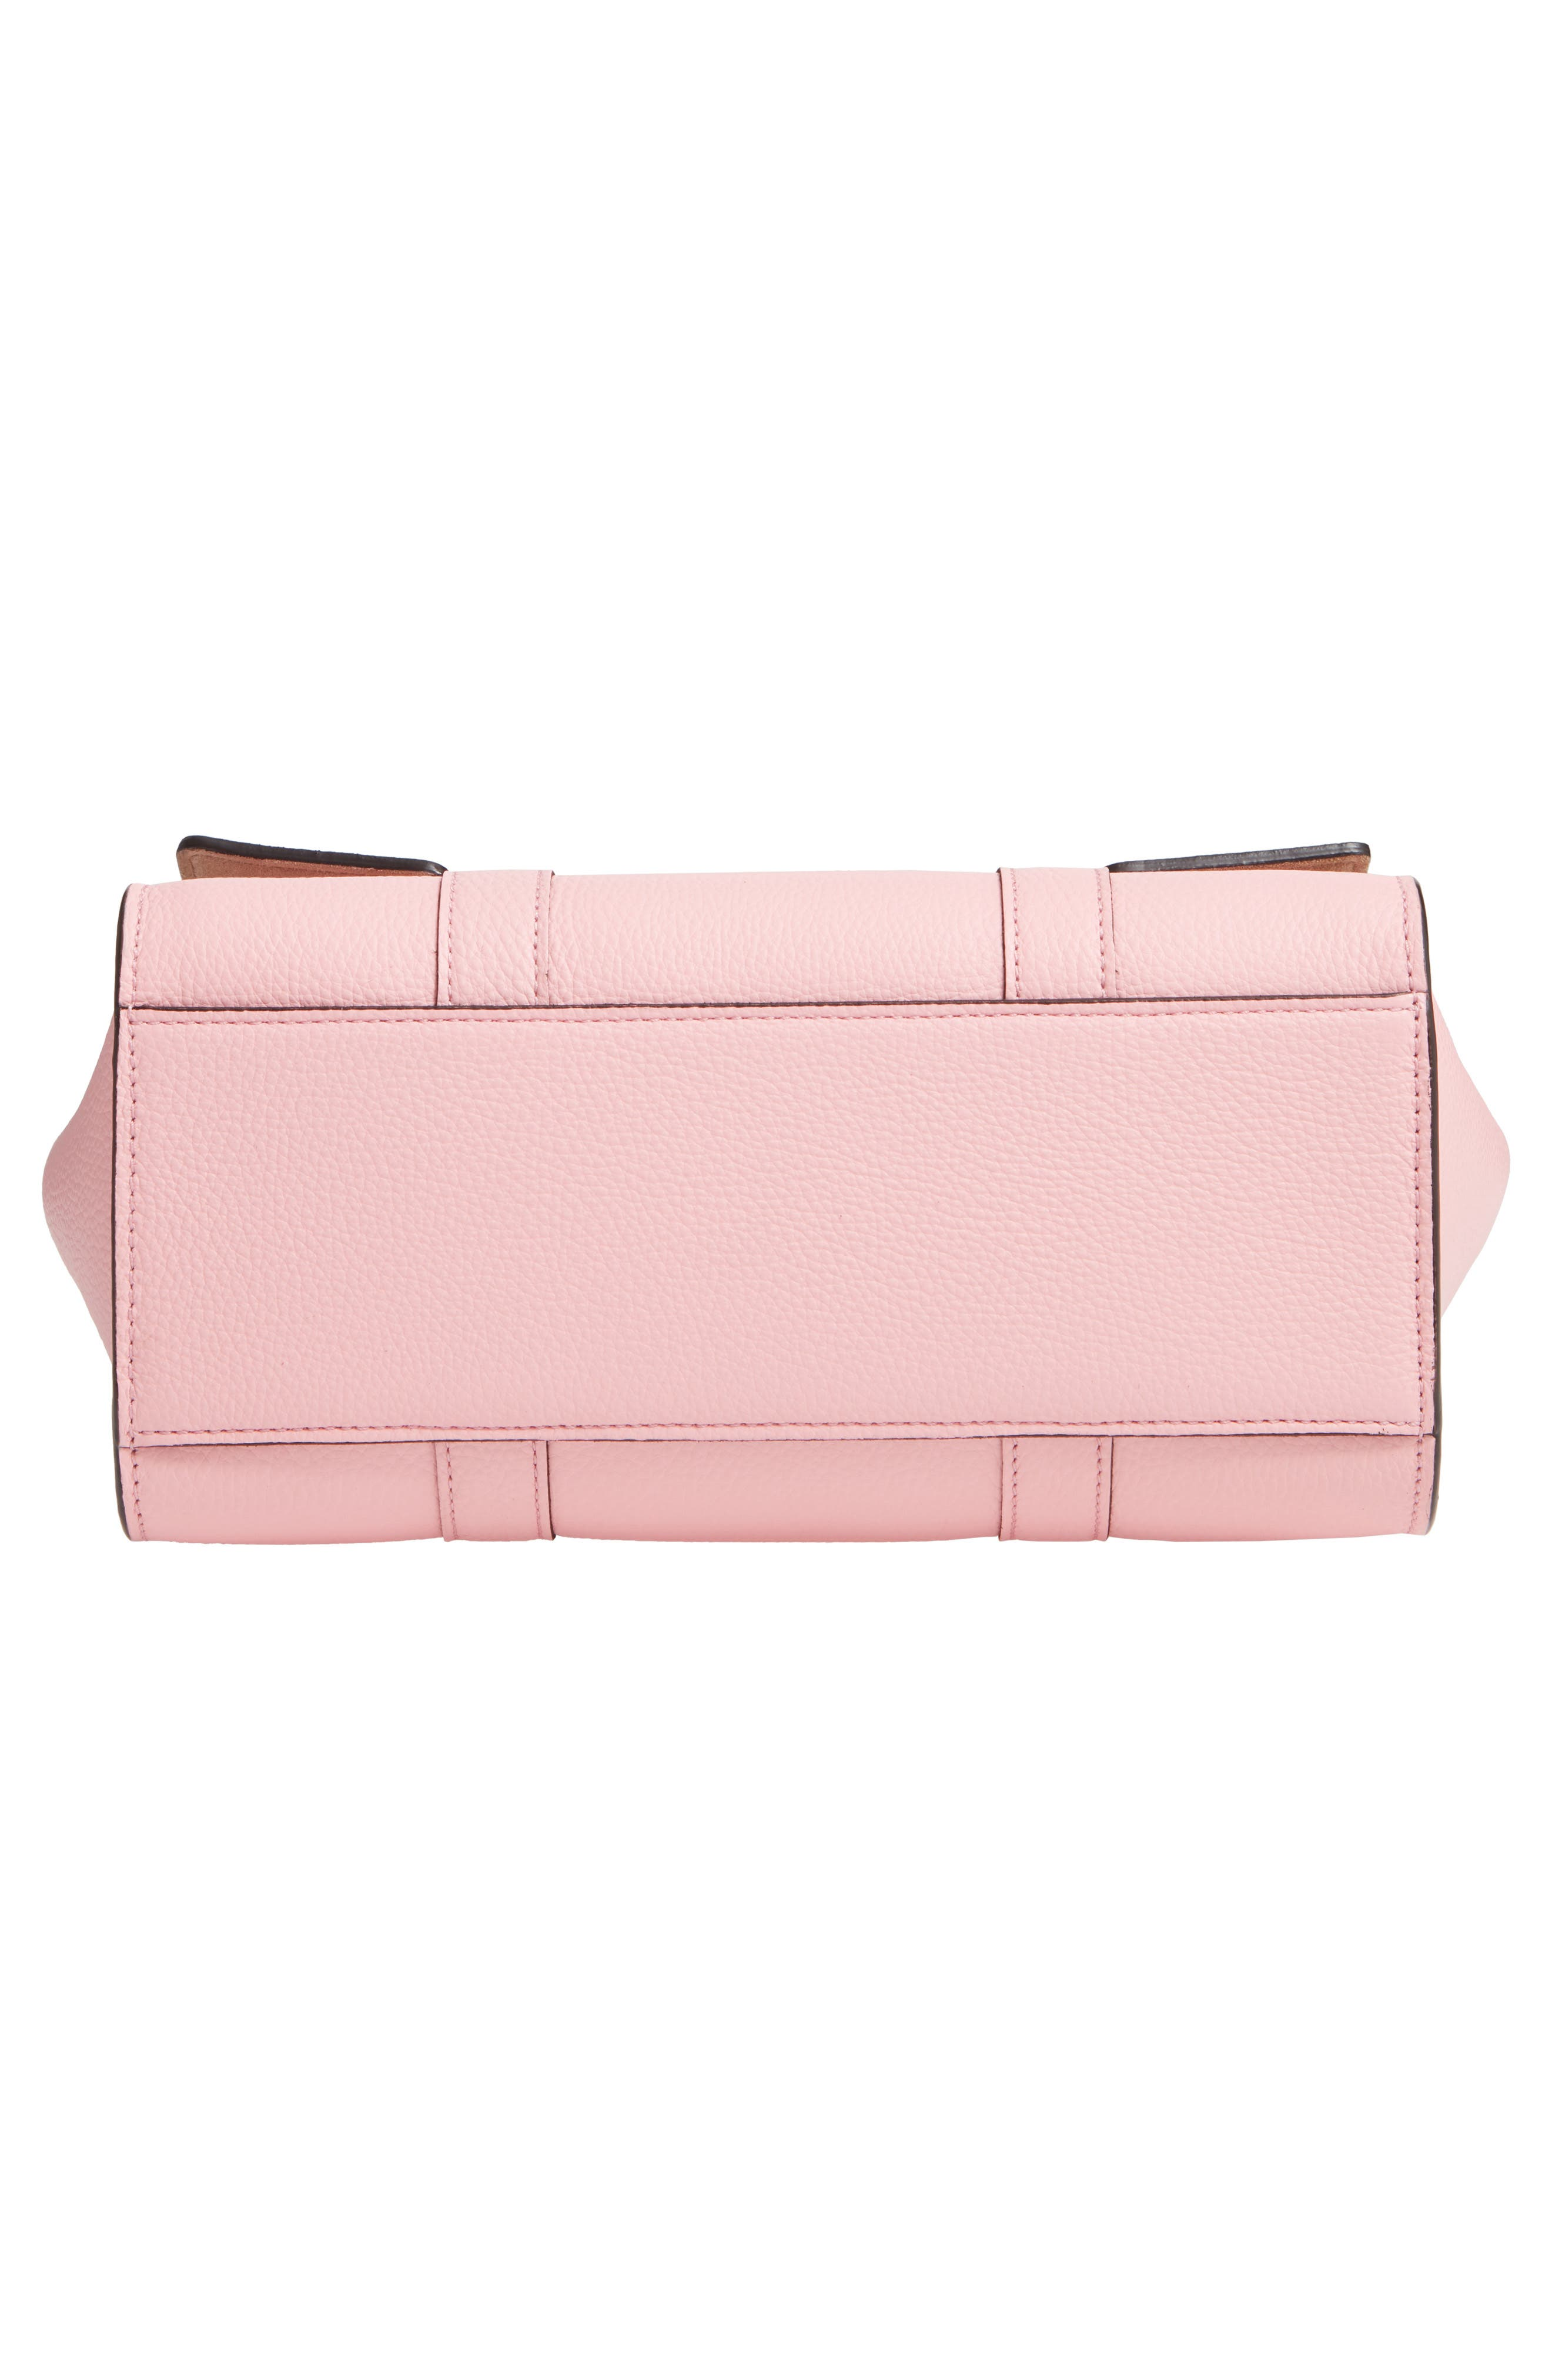 Small Bayswater Leather Satchel,                             Alternate thumbnail 6, color,                             SORBET PINK